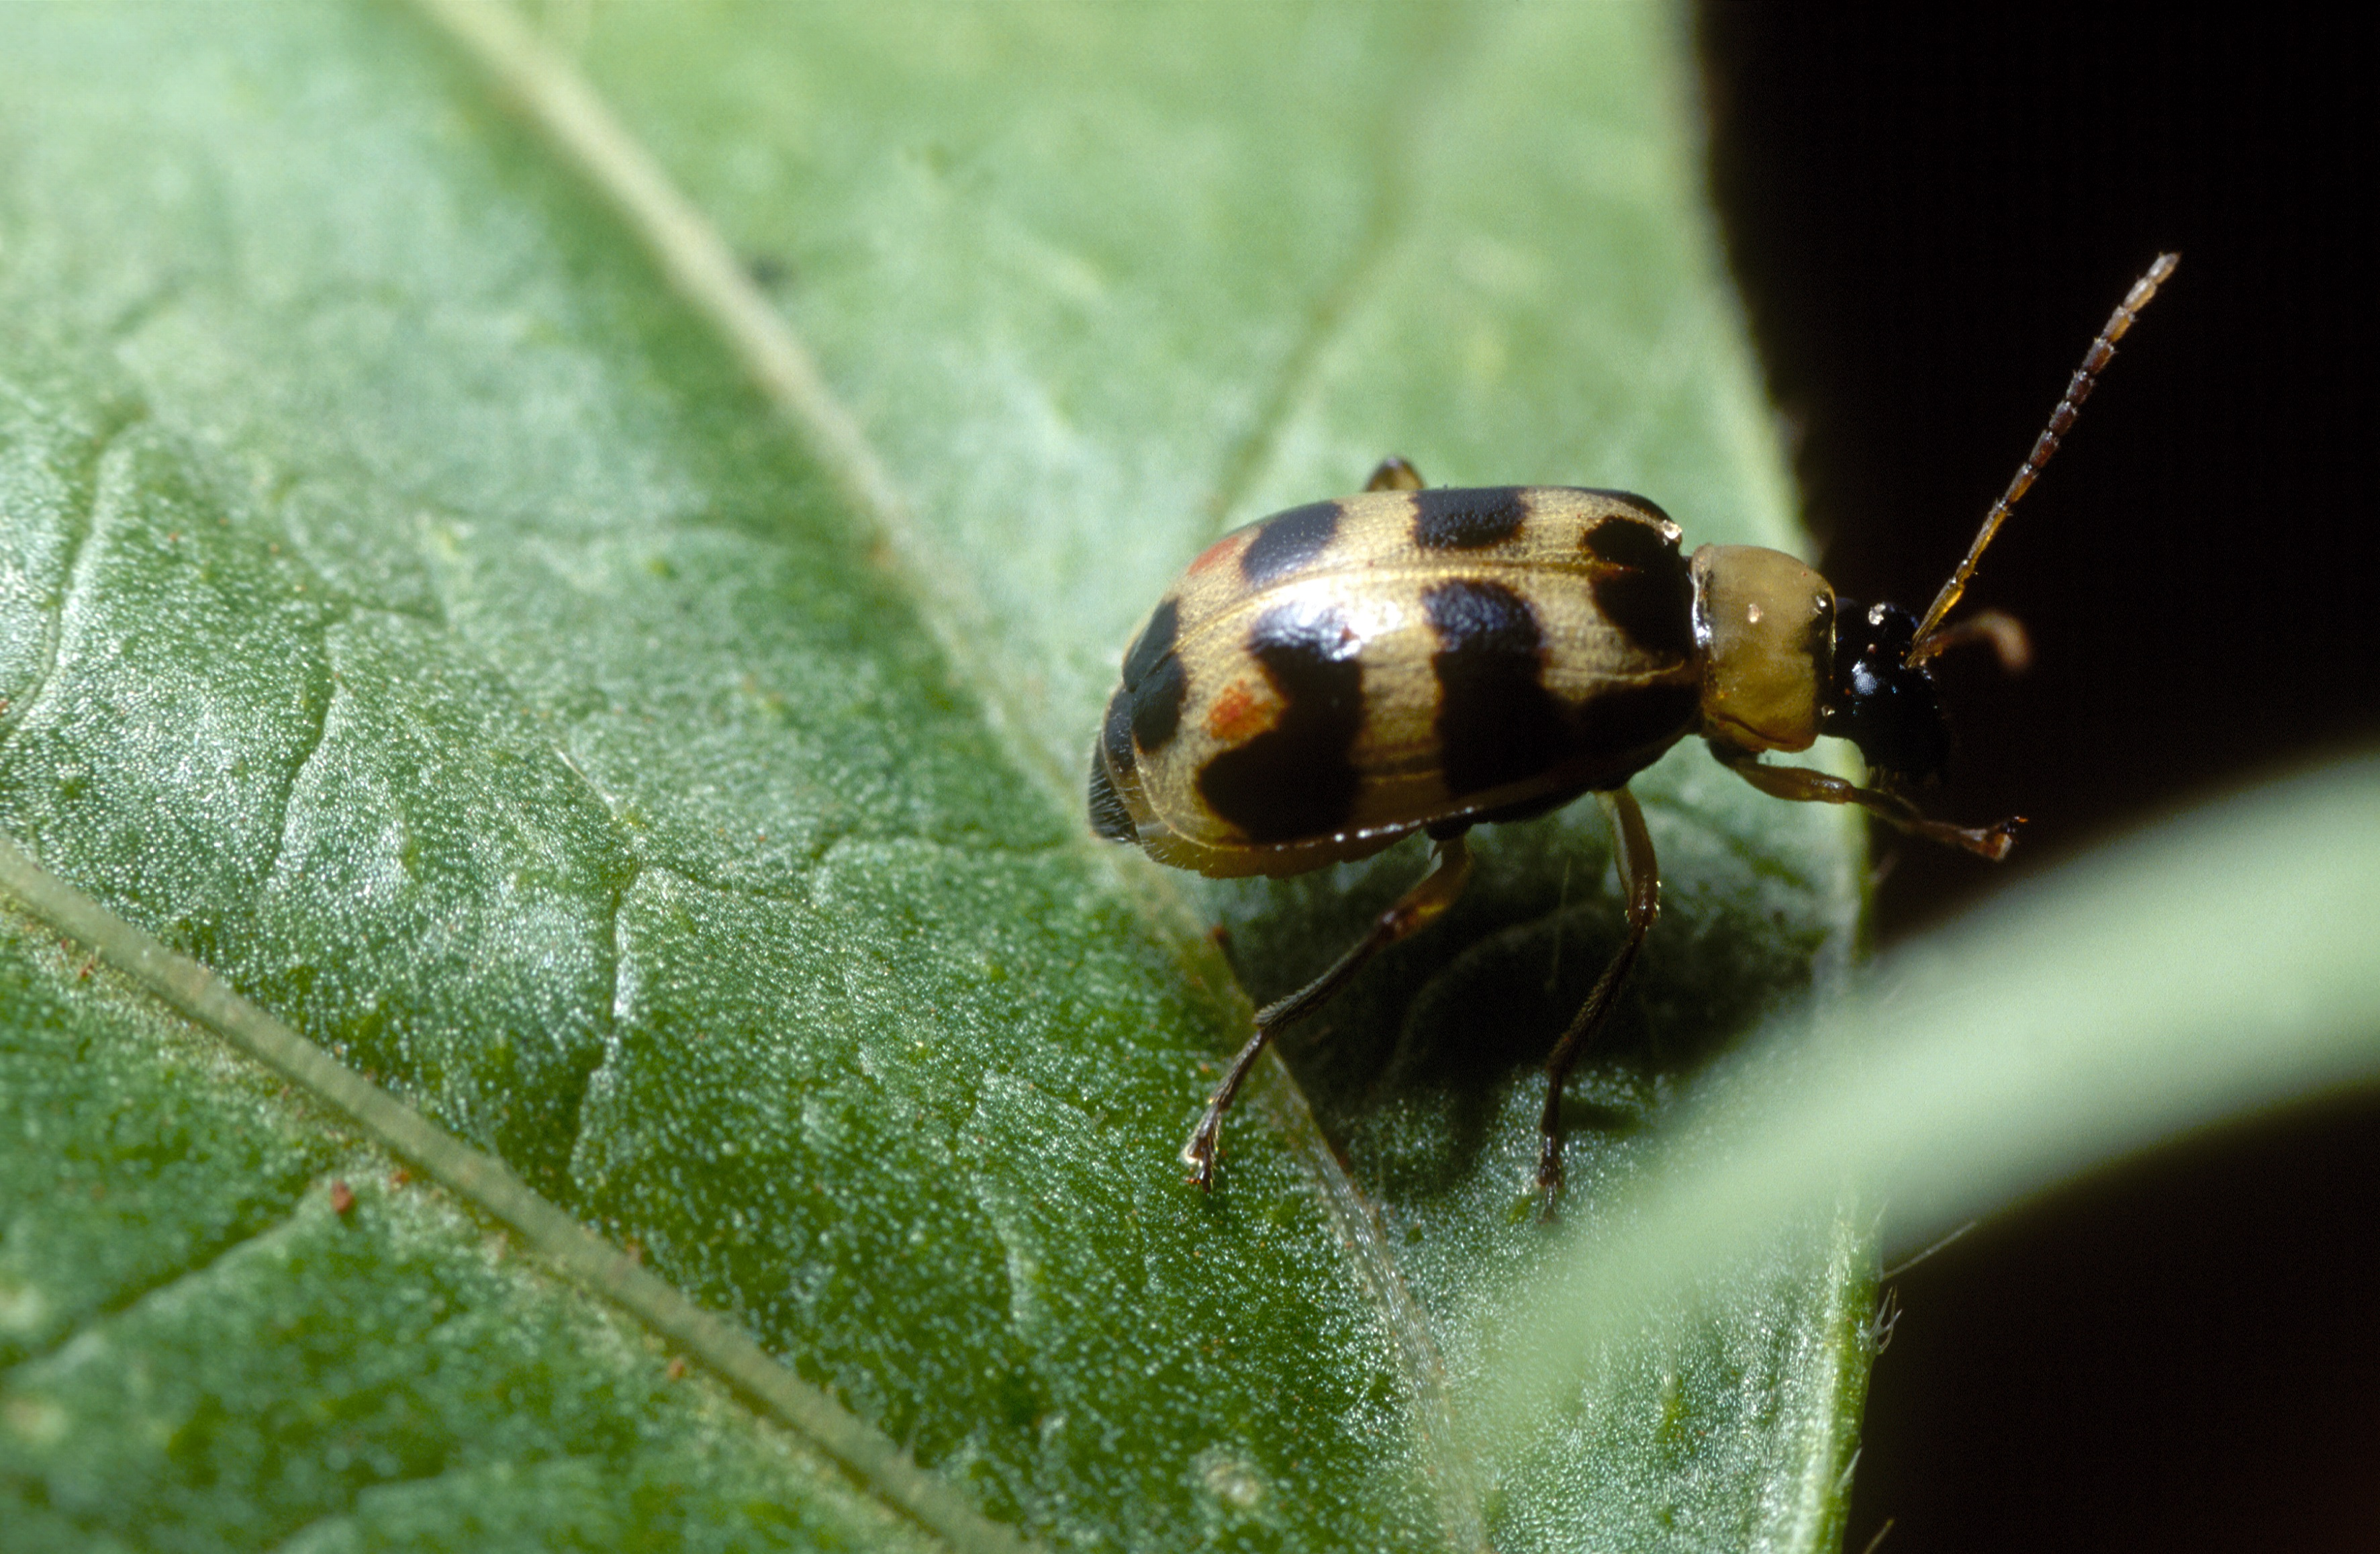 This agronomic image shows a bean leaf beetle.